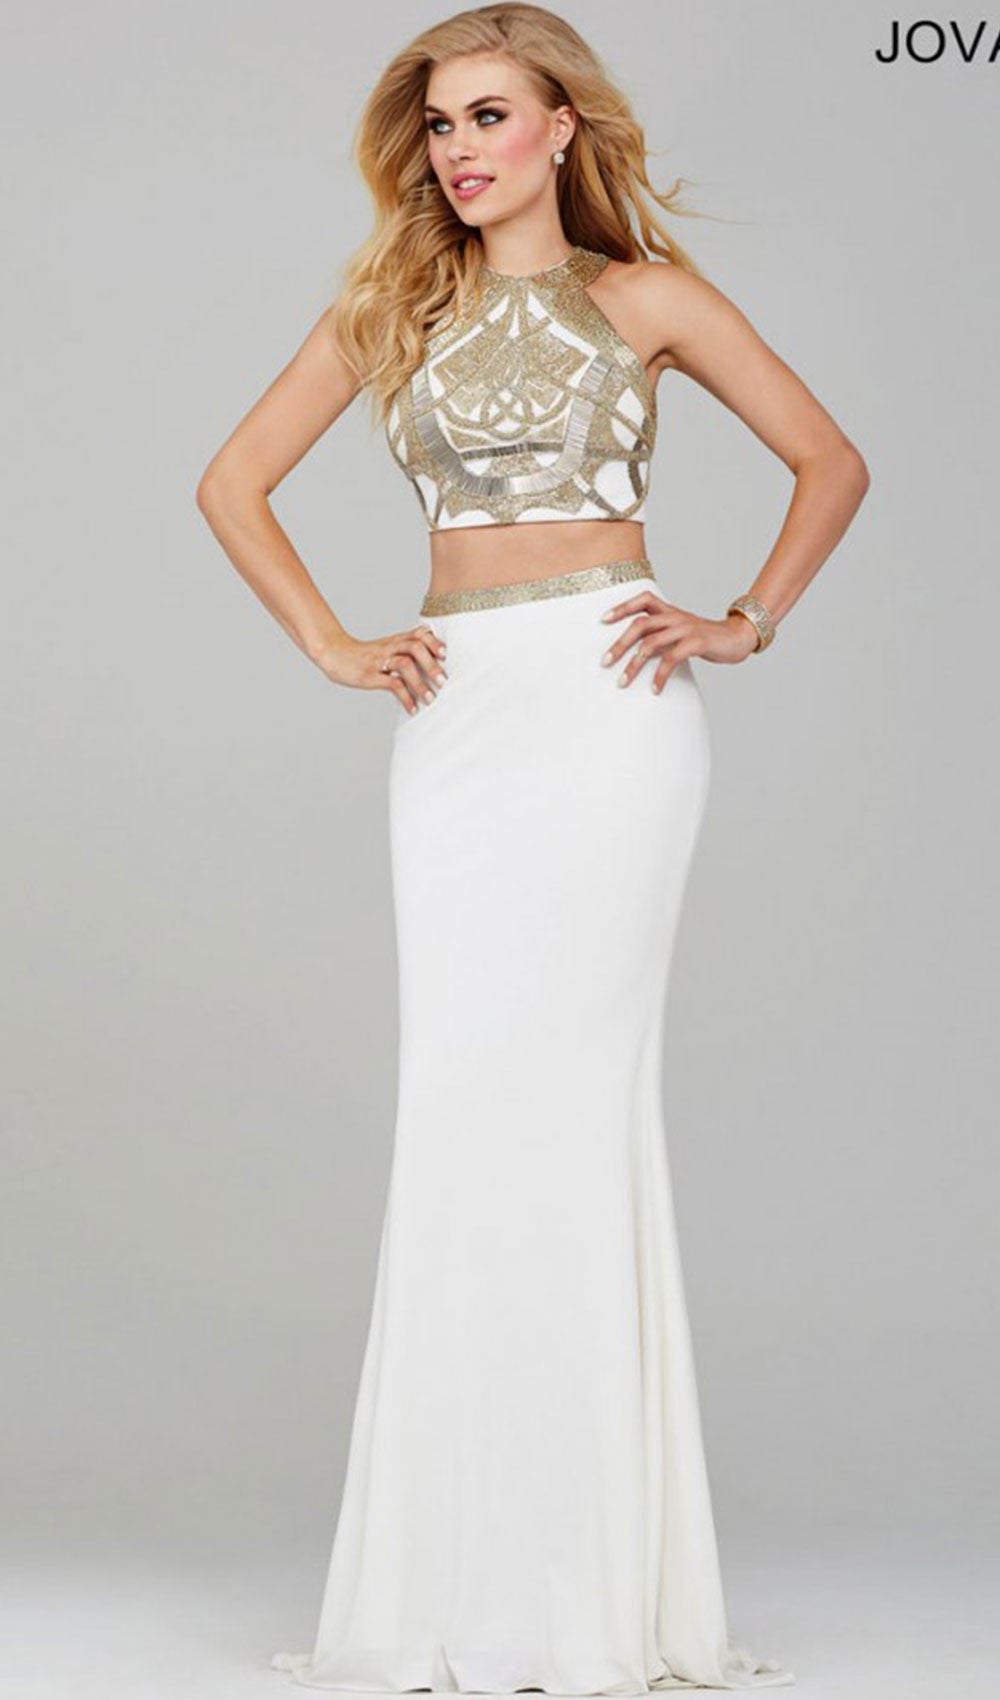 Two-Piece Prom Dress | Jovani - STYLE 24657 JOVANI- Schaffer's Bridal in Des Moines & Phoenix